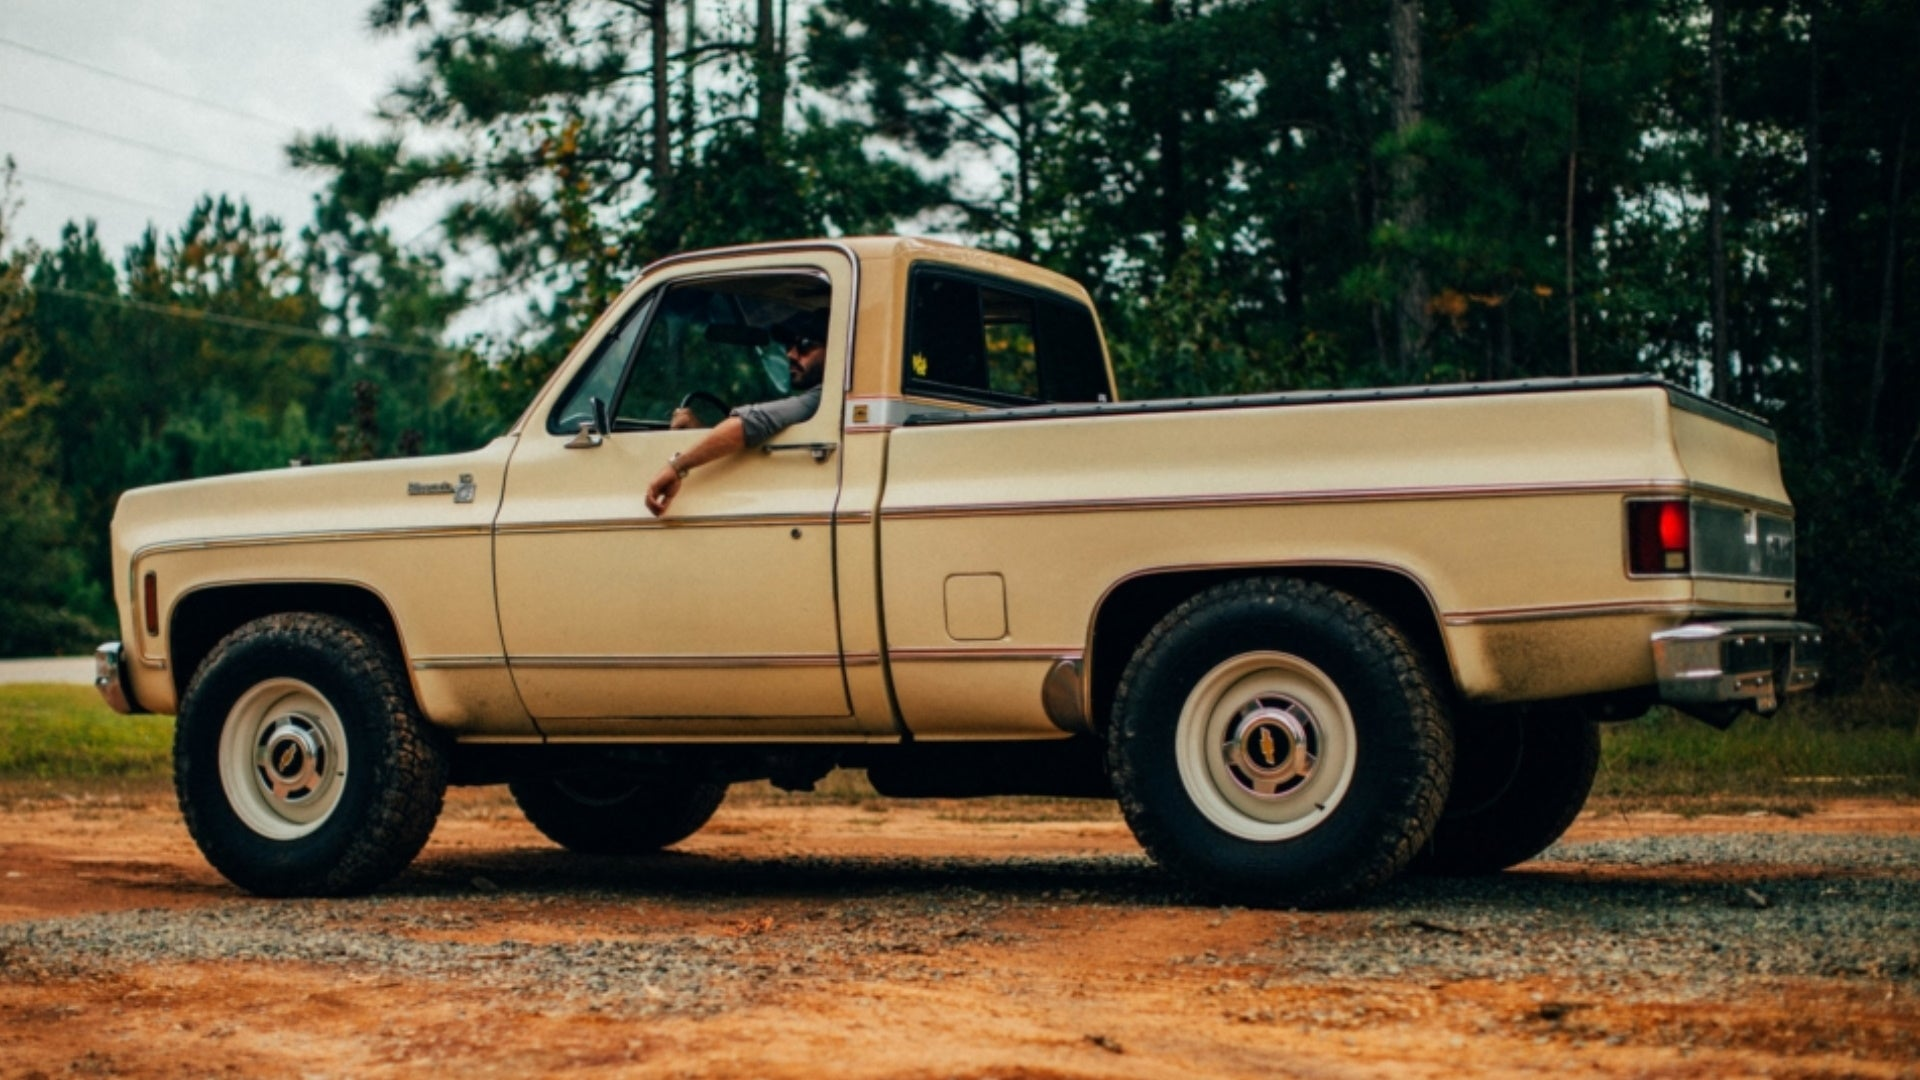 You Can Buy A New Square Body Chevy Truck With 650 Hp And Period Correct 4x4 Style